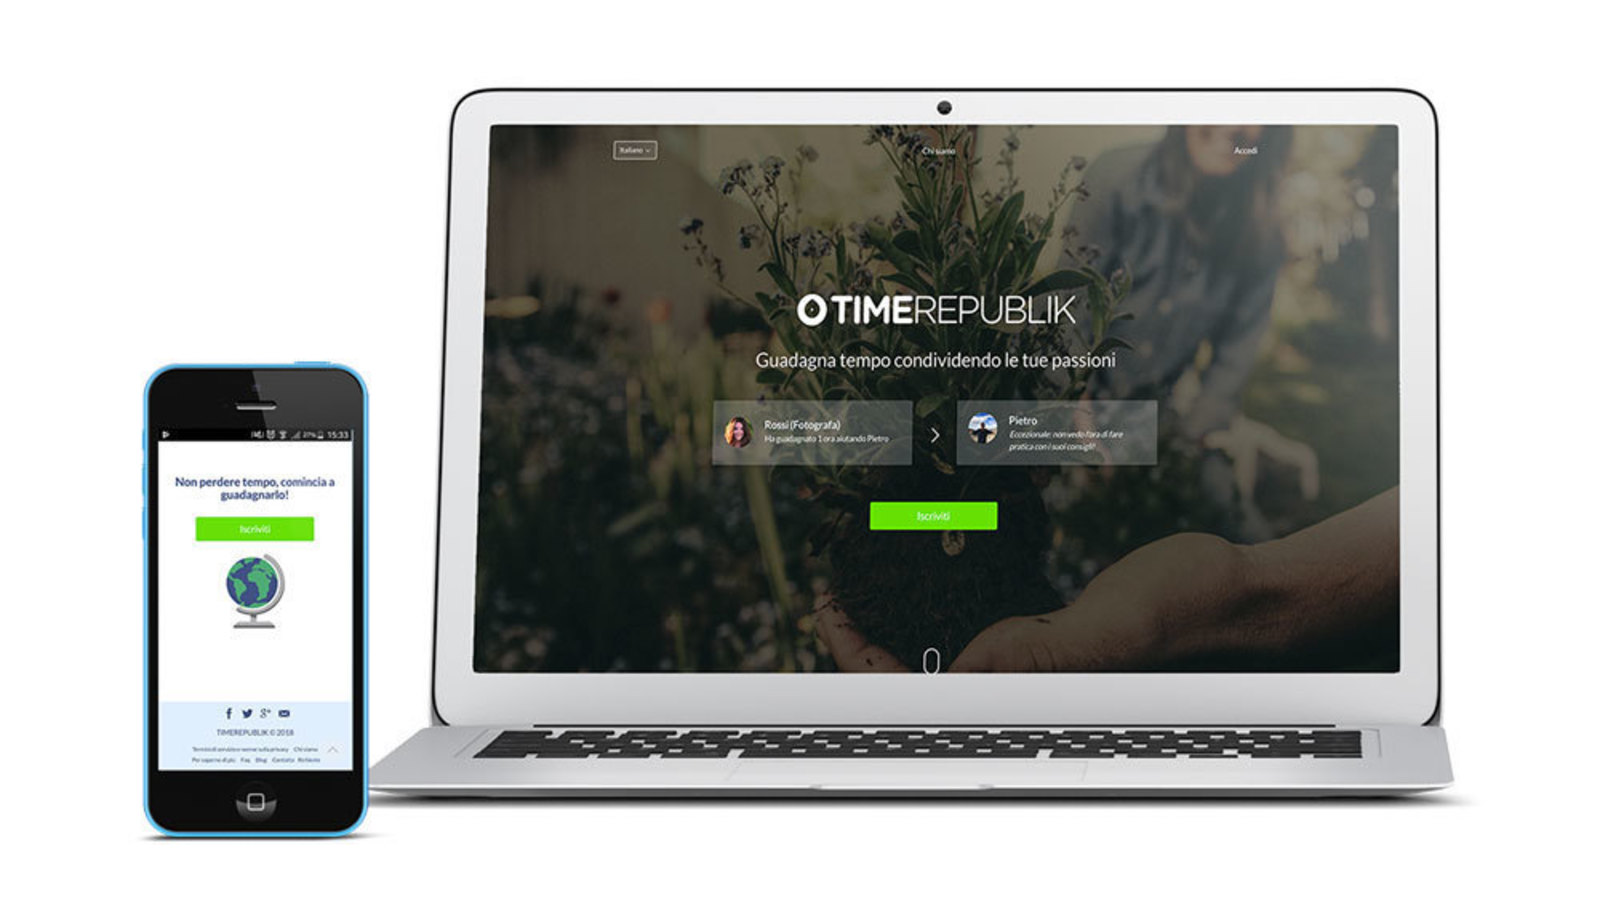 Mockup of mobile device and laptop with the Time Republik web page